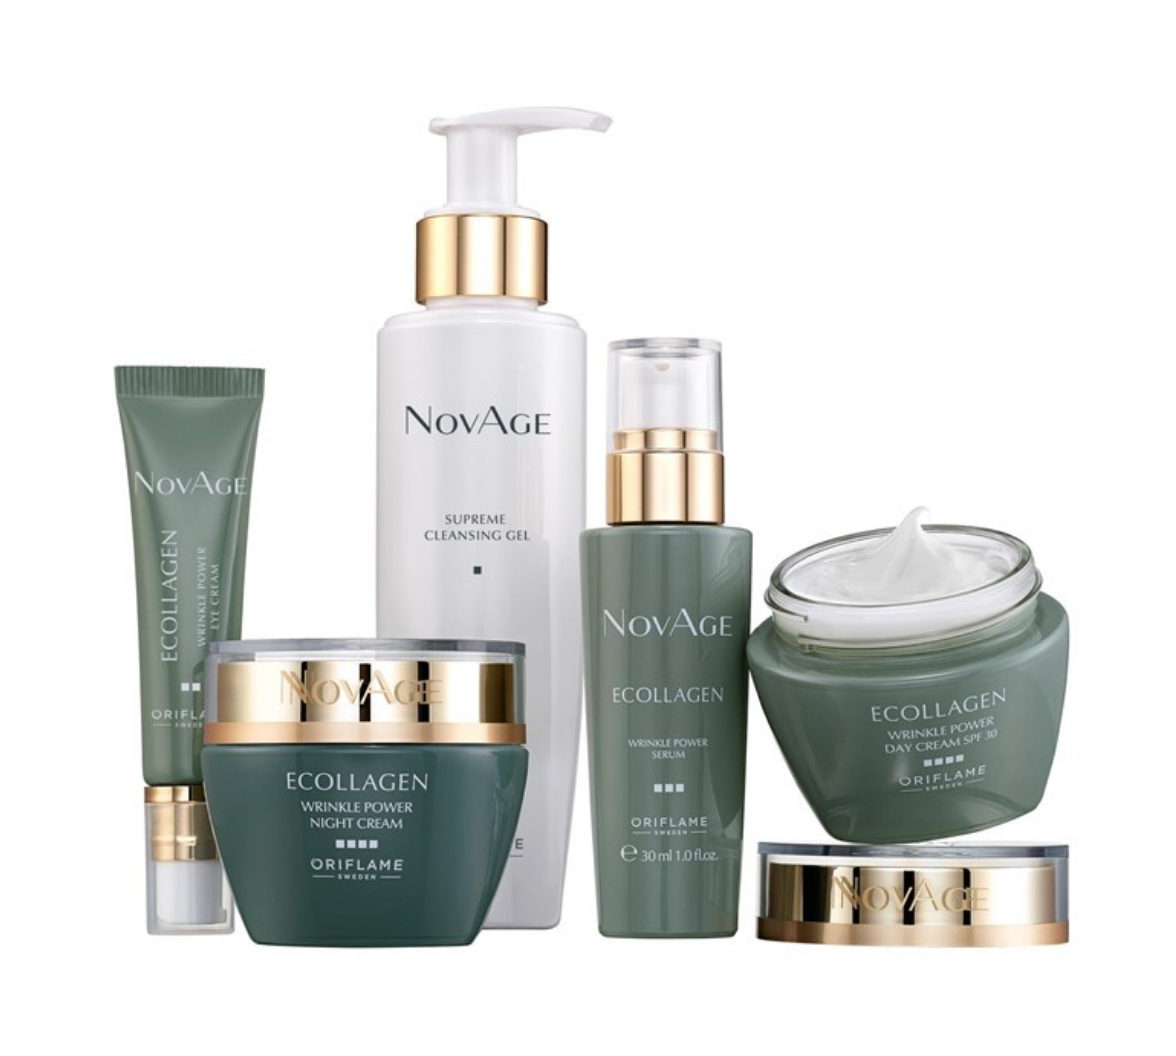 NovAge Ecollagen-sett